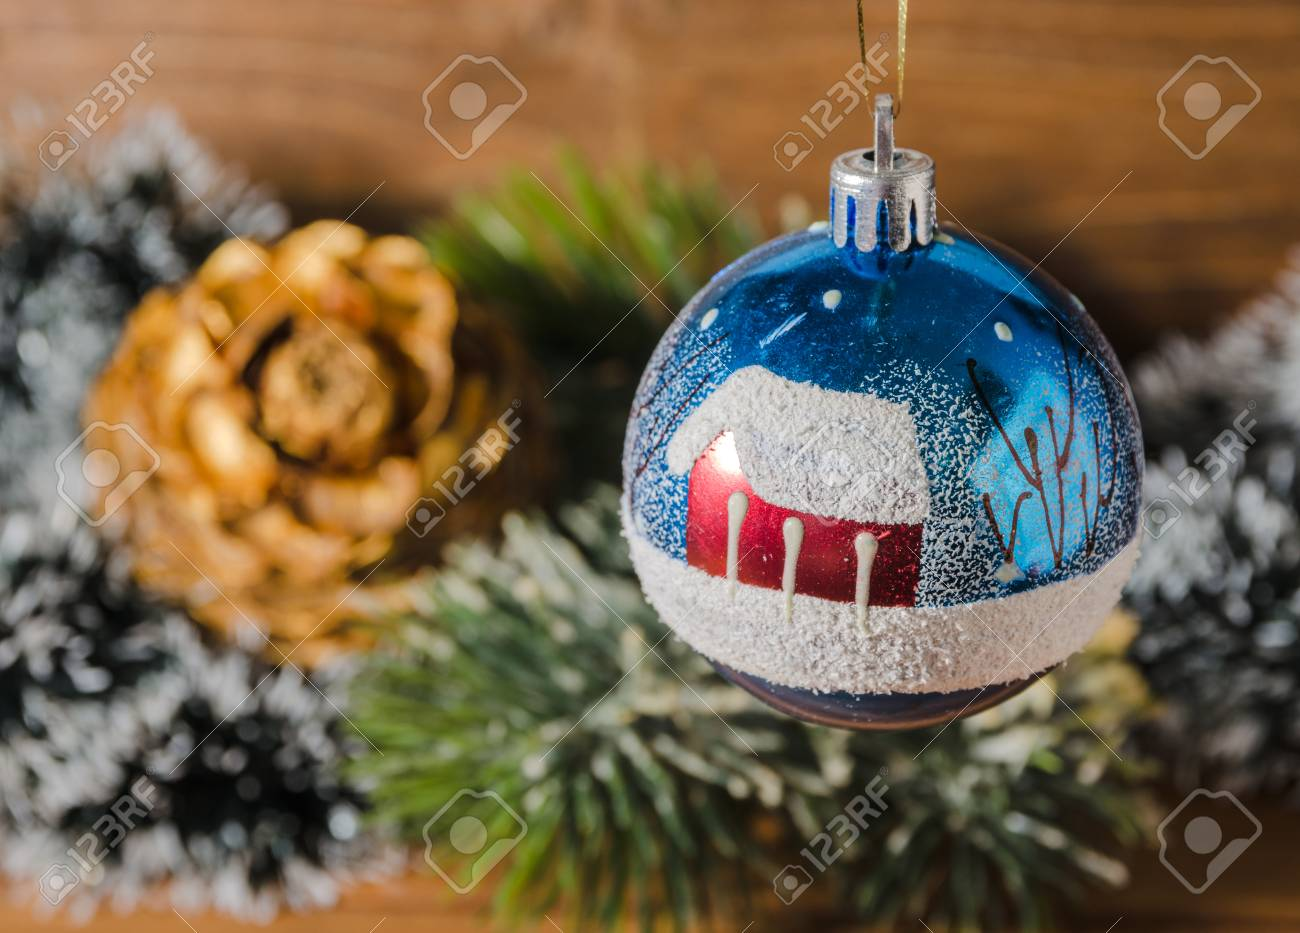 Old Fashioned Christmas Tree Decorations Stock Photo, Picture And ...